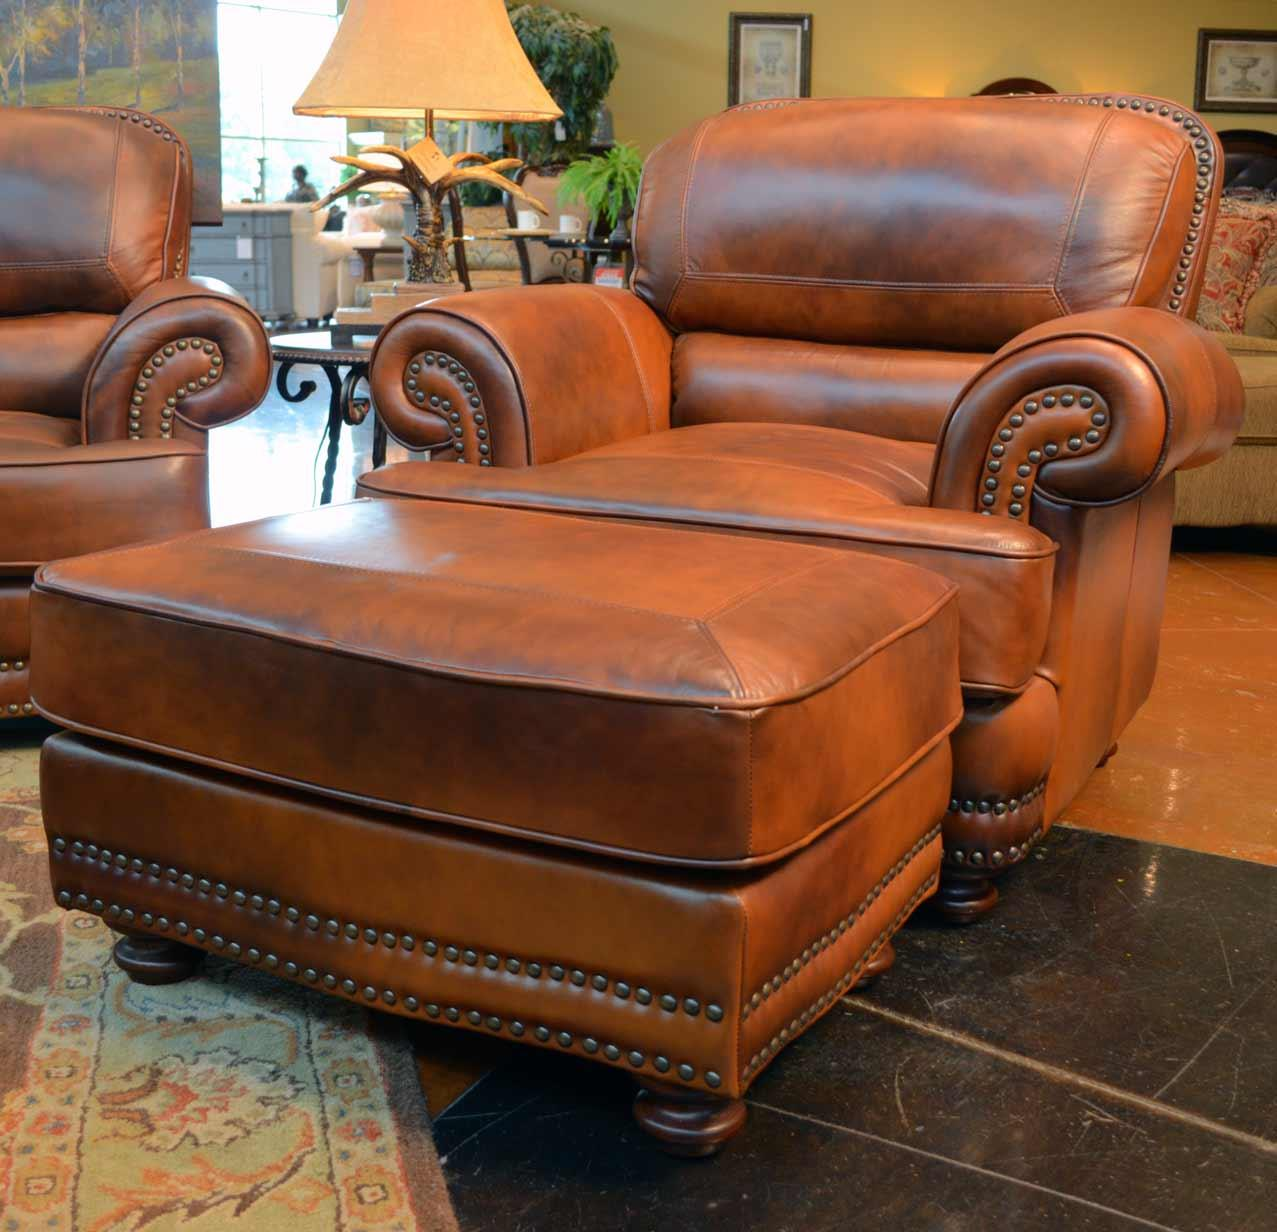 lg interiors great american home store memphis tn southaven ms accent chairs by lg interiors cowboy leather chair